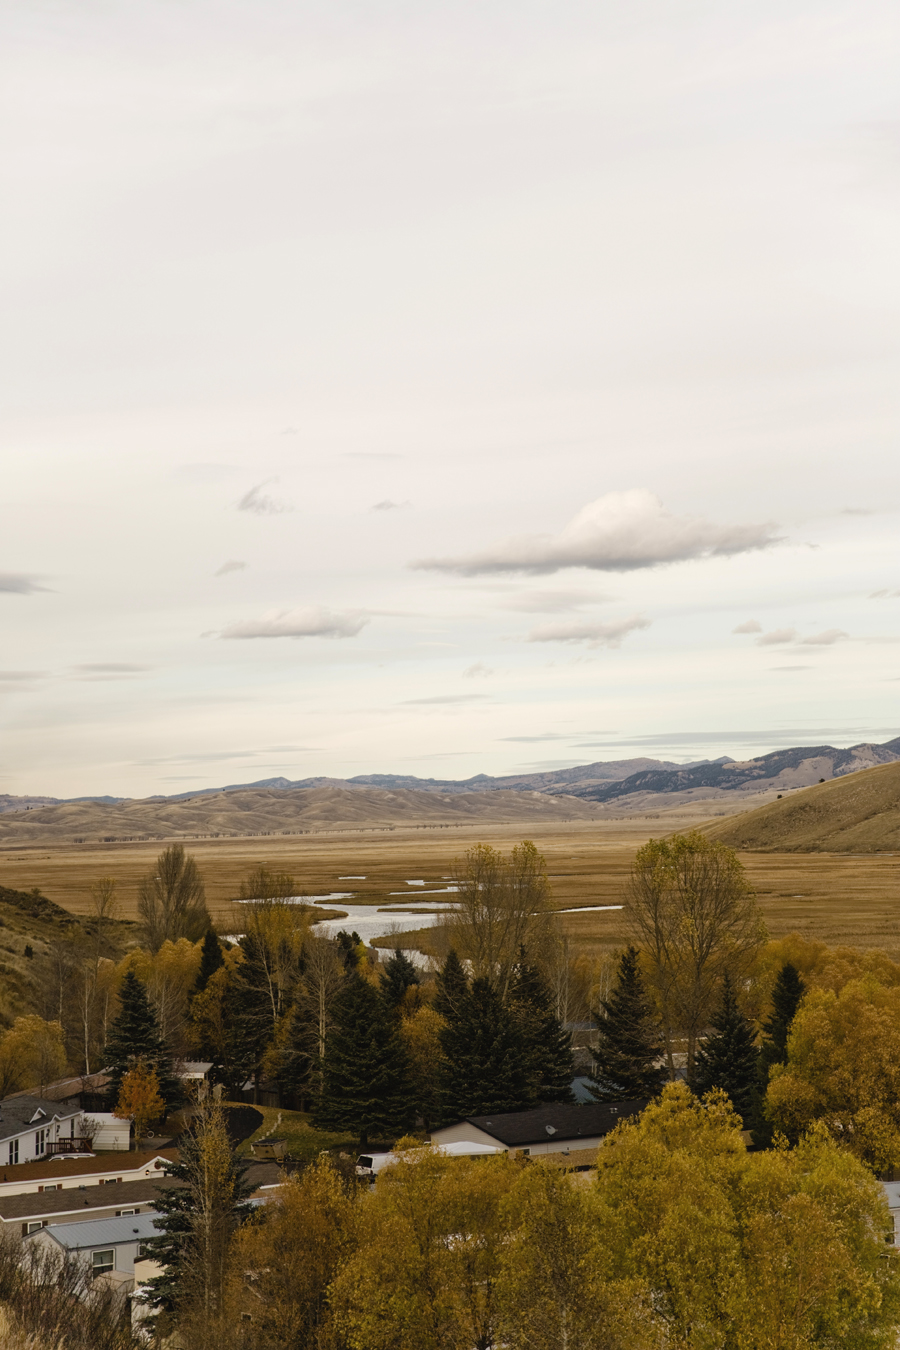 roadtrip_celinemarks_ny_montana2015_279